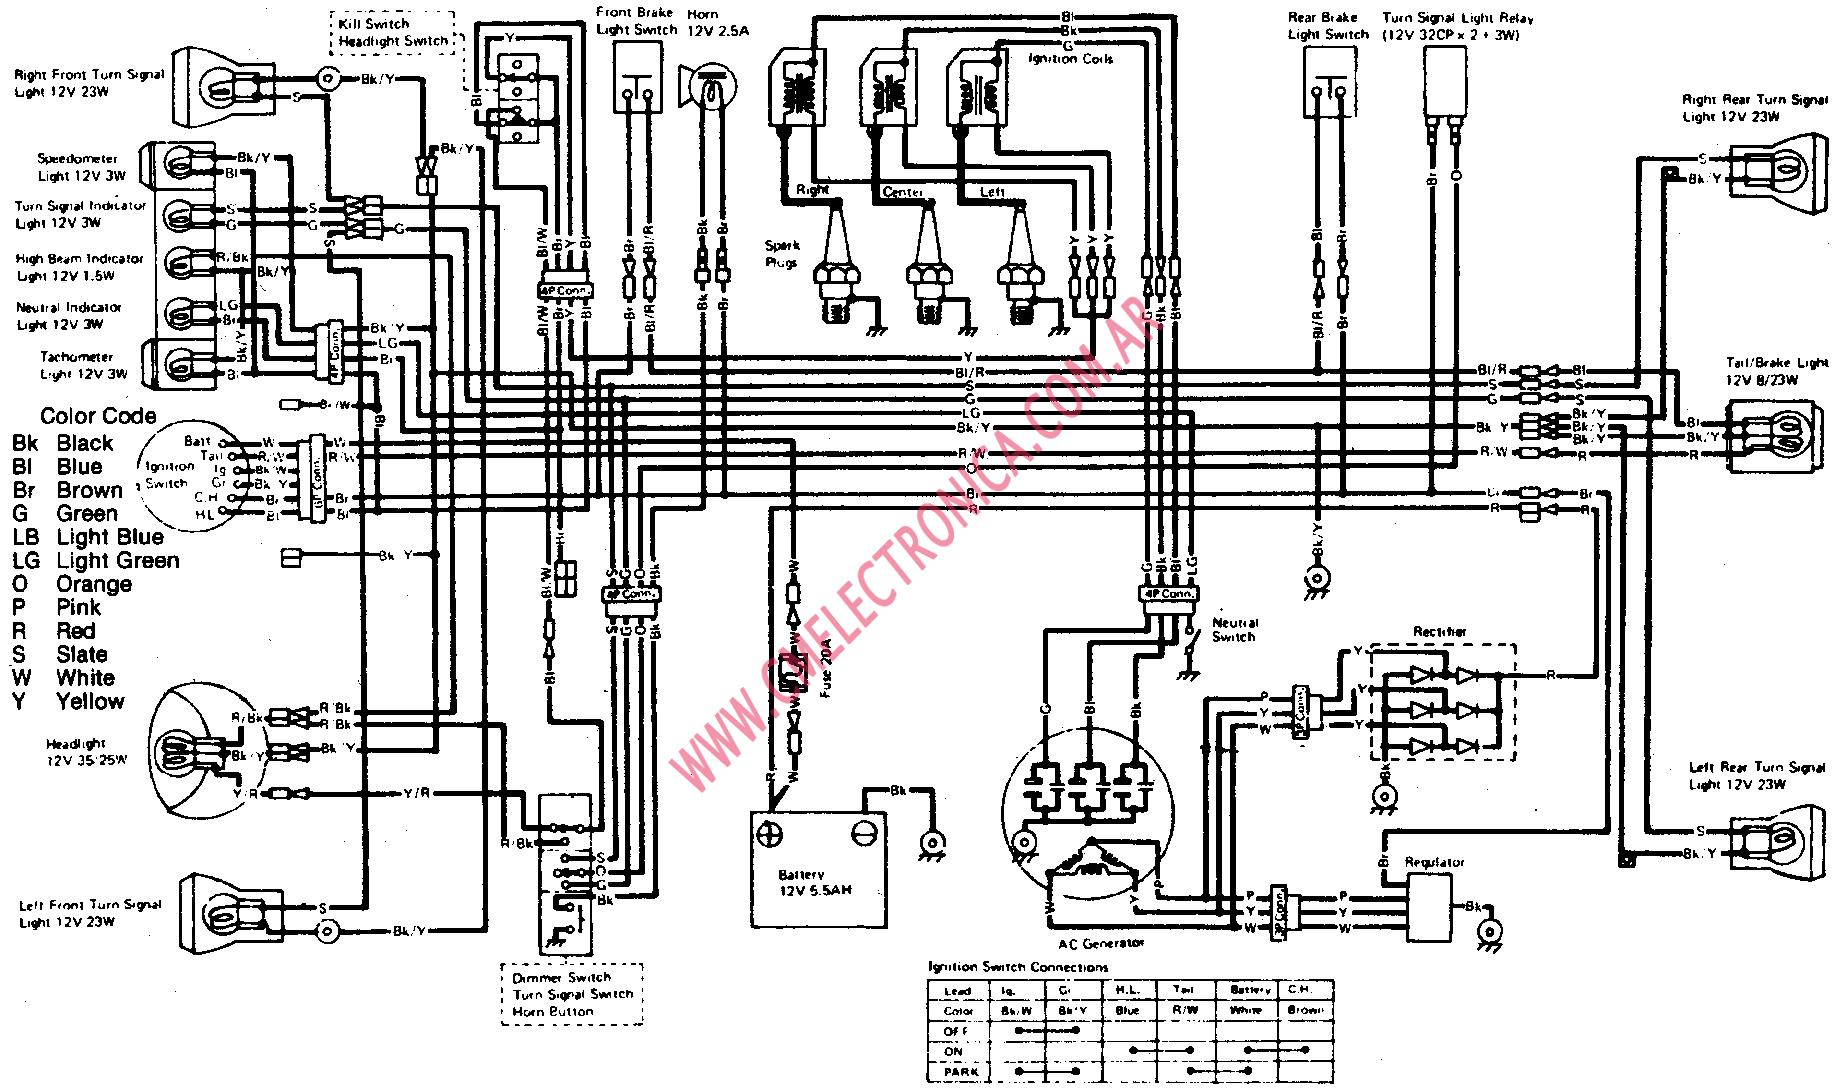 Wiring Diagram Database: Kawasaki Brute Force 750 Wiring